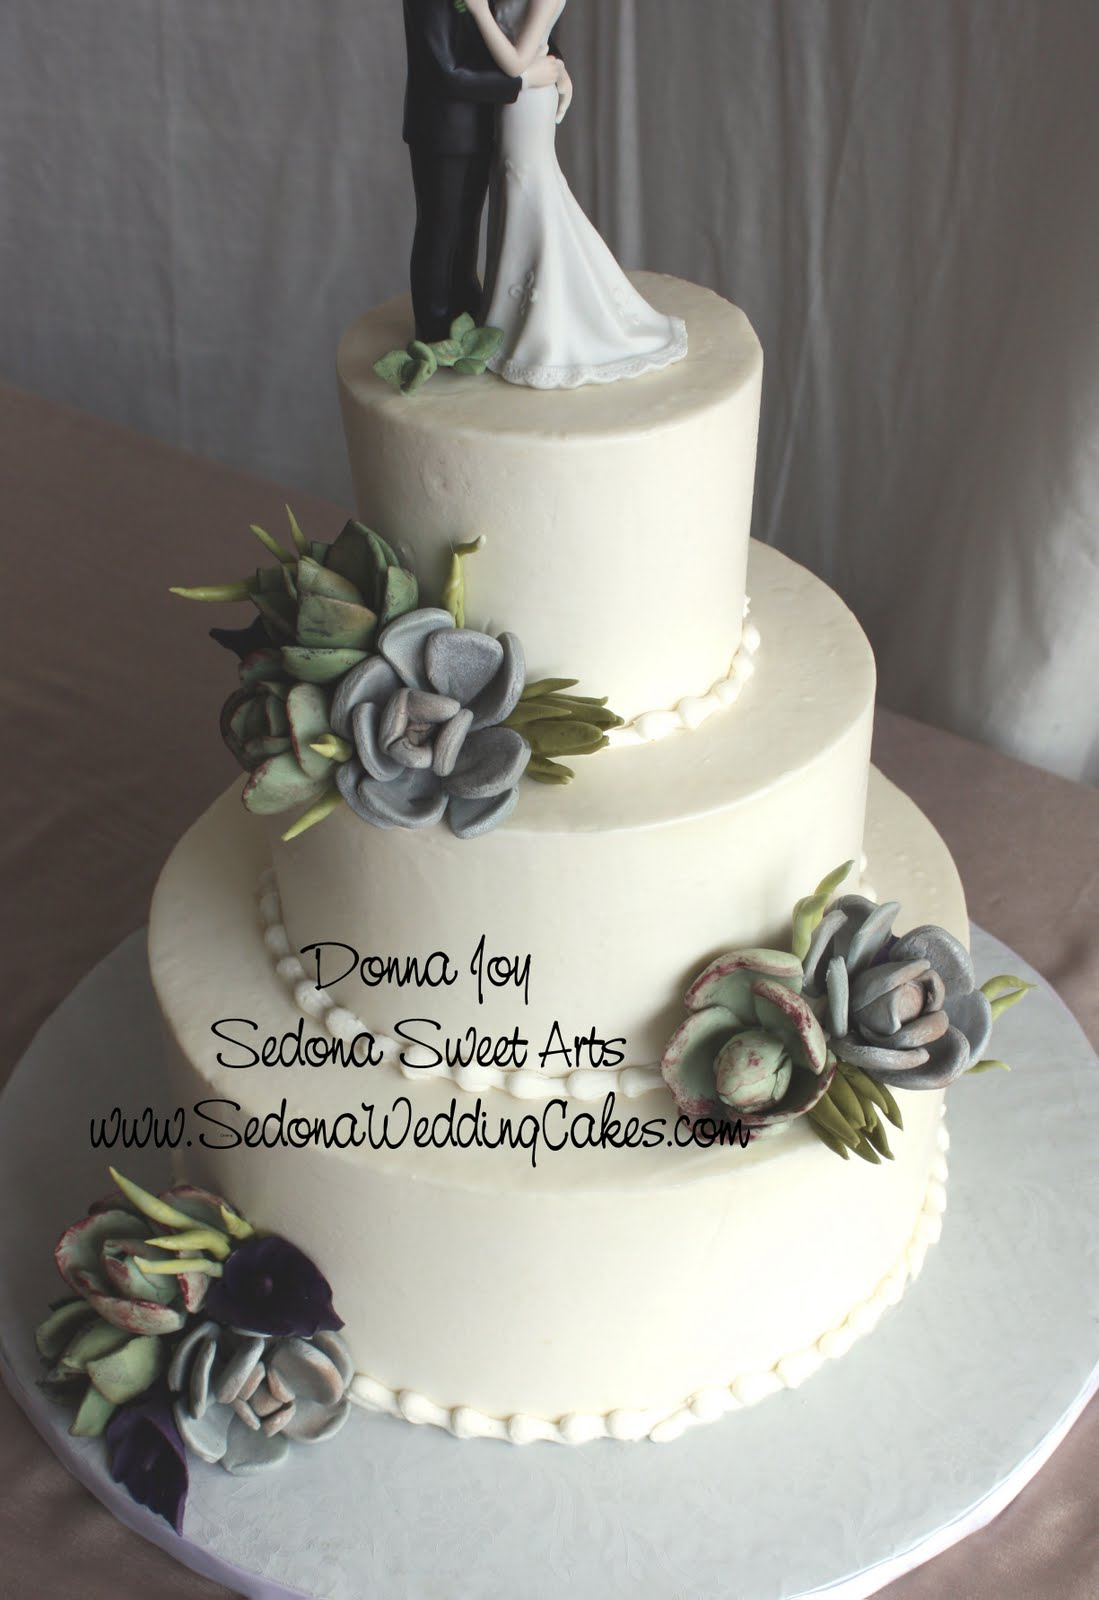 Sedona Wedding Cakes  Sugar Succulent Wedding Cake Sedona Keeping the theme going Donna Joy of Sedona Sweet Arts created a variety of  hand sculpted sugar succulents for the wedding cake  How sweet is this